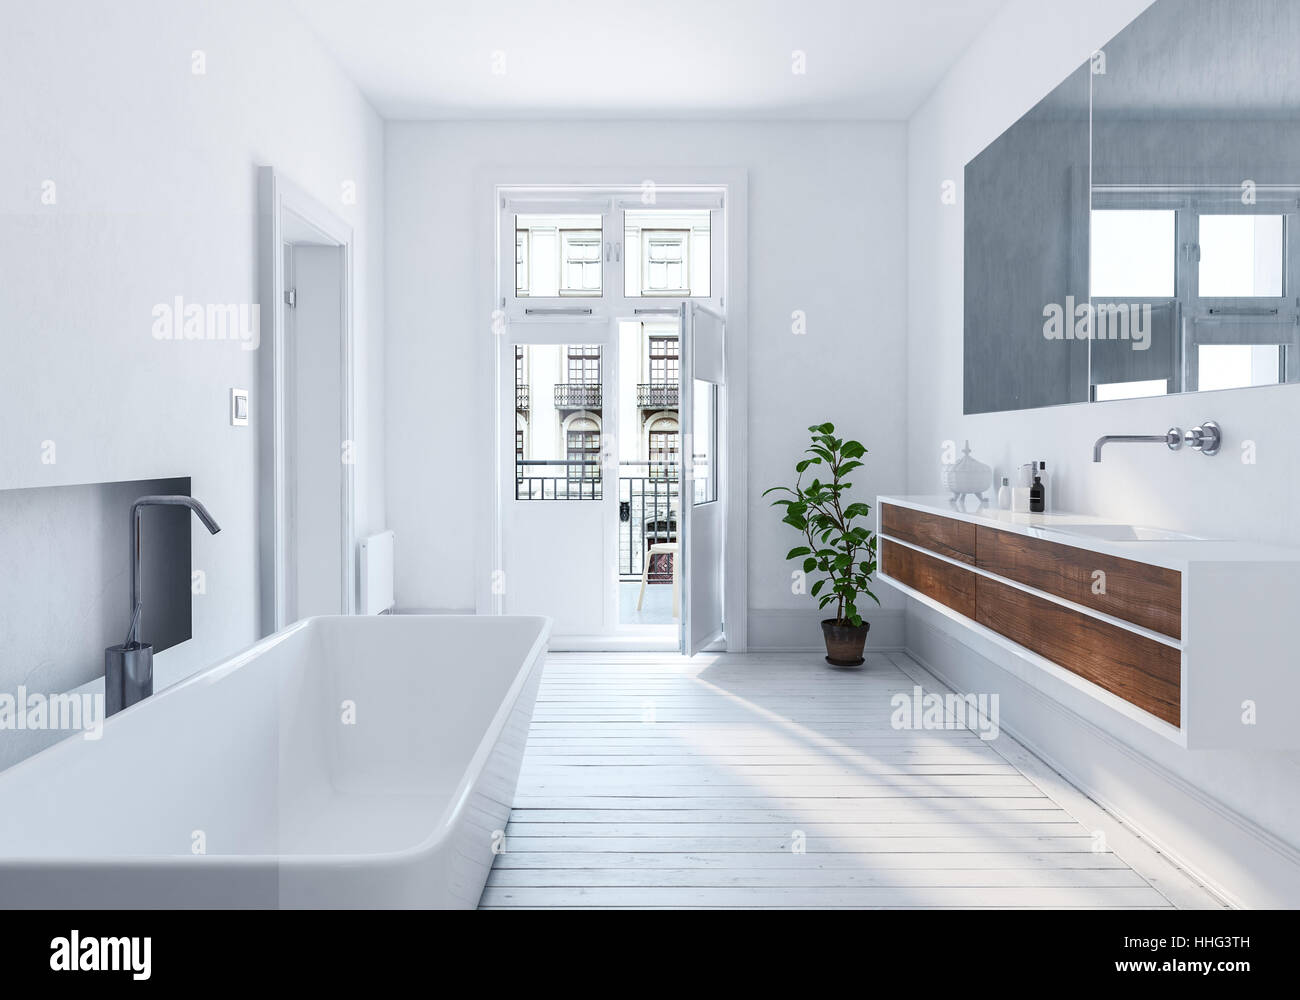 spacious all white bathroom. Modern Spacious White Urban Bathroom Interior With Long Mirror, Wall Mounted Cabinets And Bathtub Monochromatic Decor, 3d Rendering All